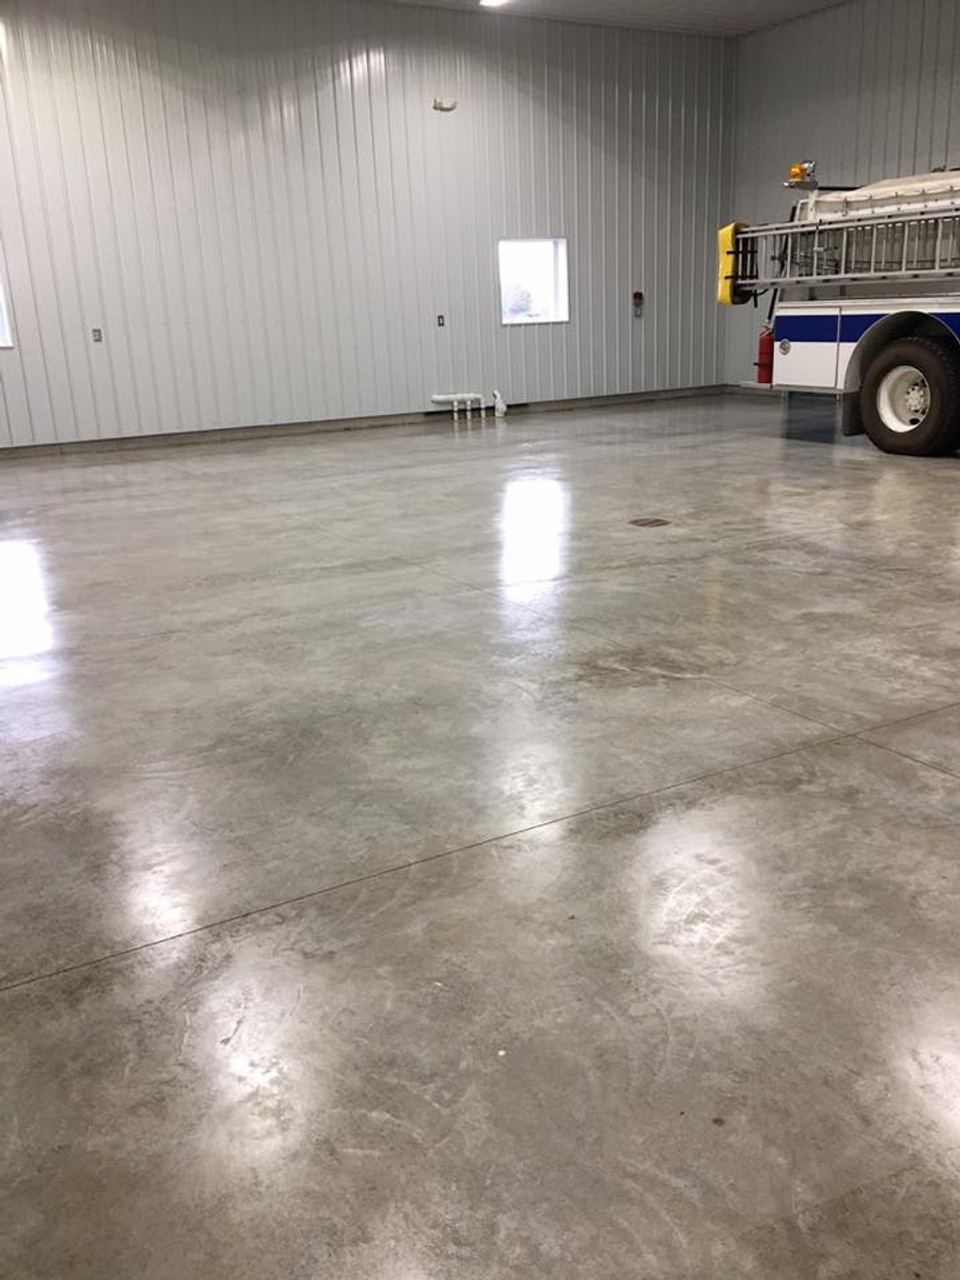 Brighton IL Fire Department Concrete Floor Sealed with Firehouse WP Concrete Sealer and topped with Awesome 21 Floor Finish.  By Chuck McBride of Chucks Cleaning Service